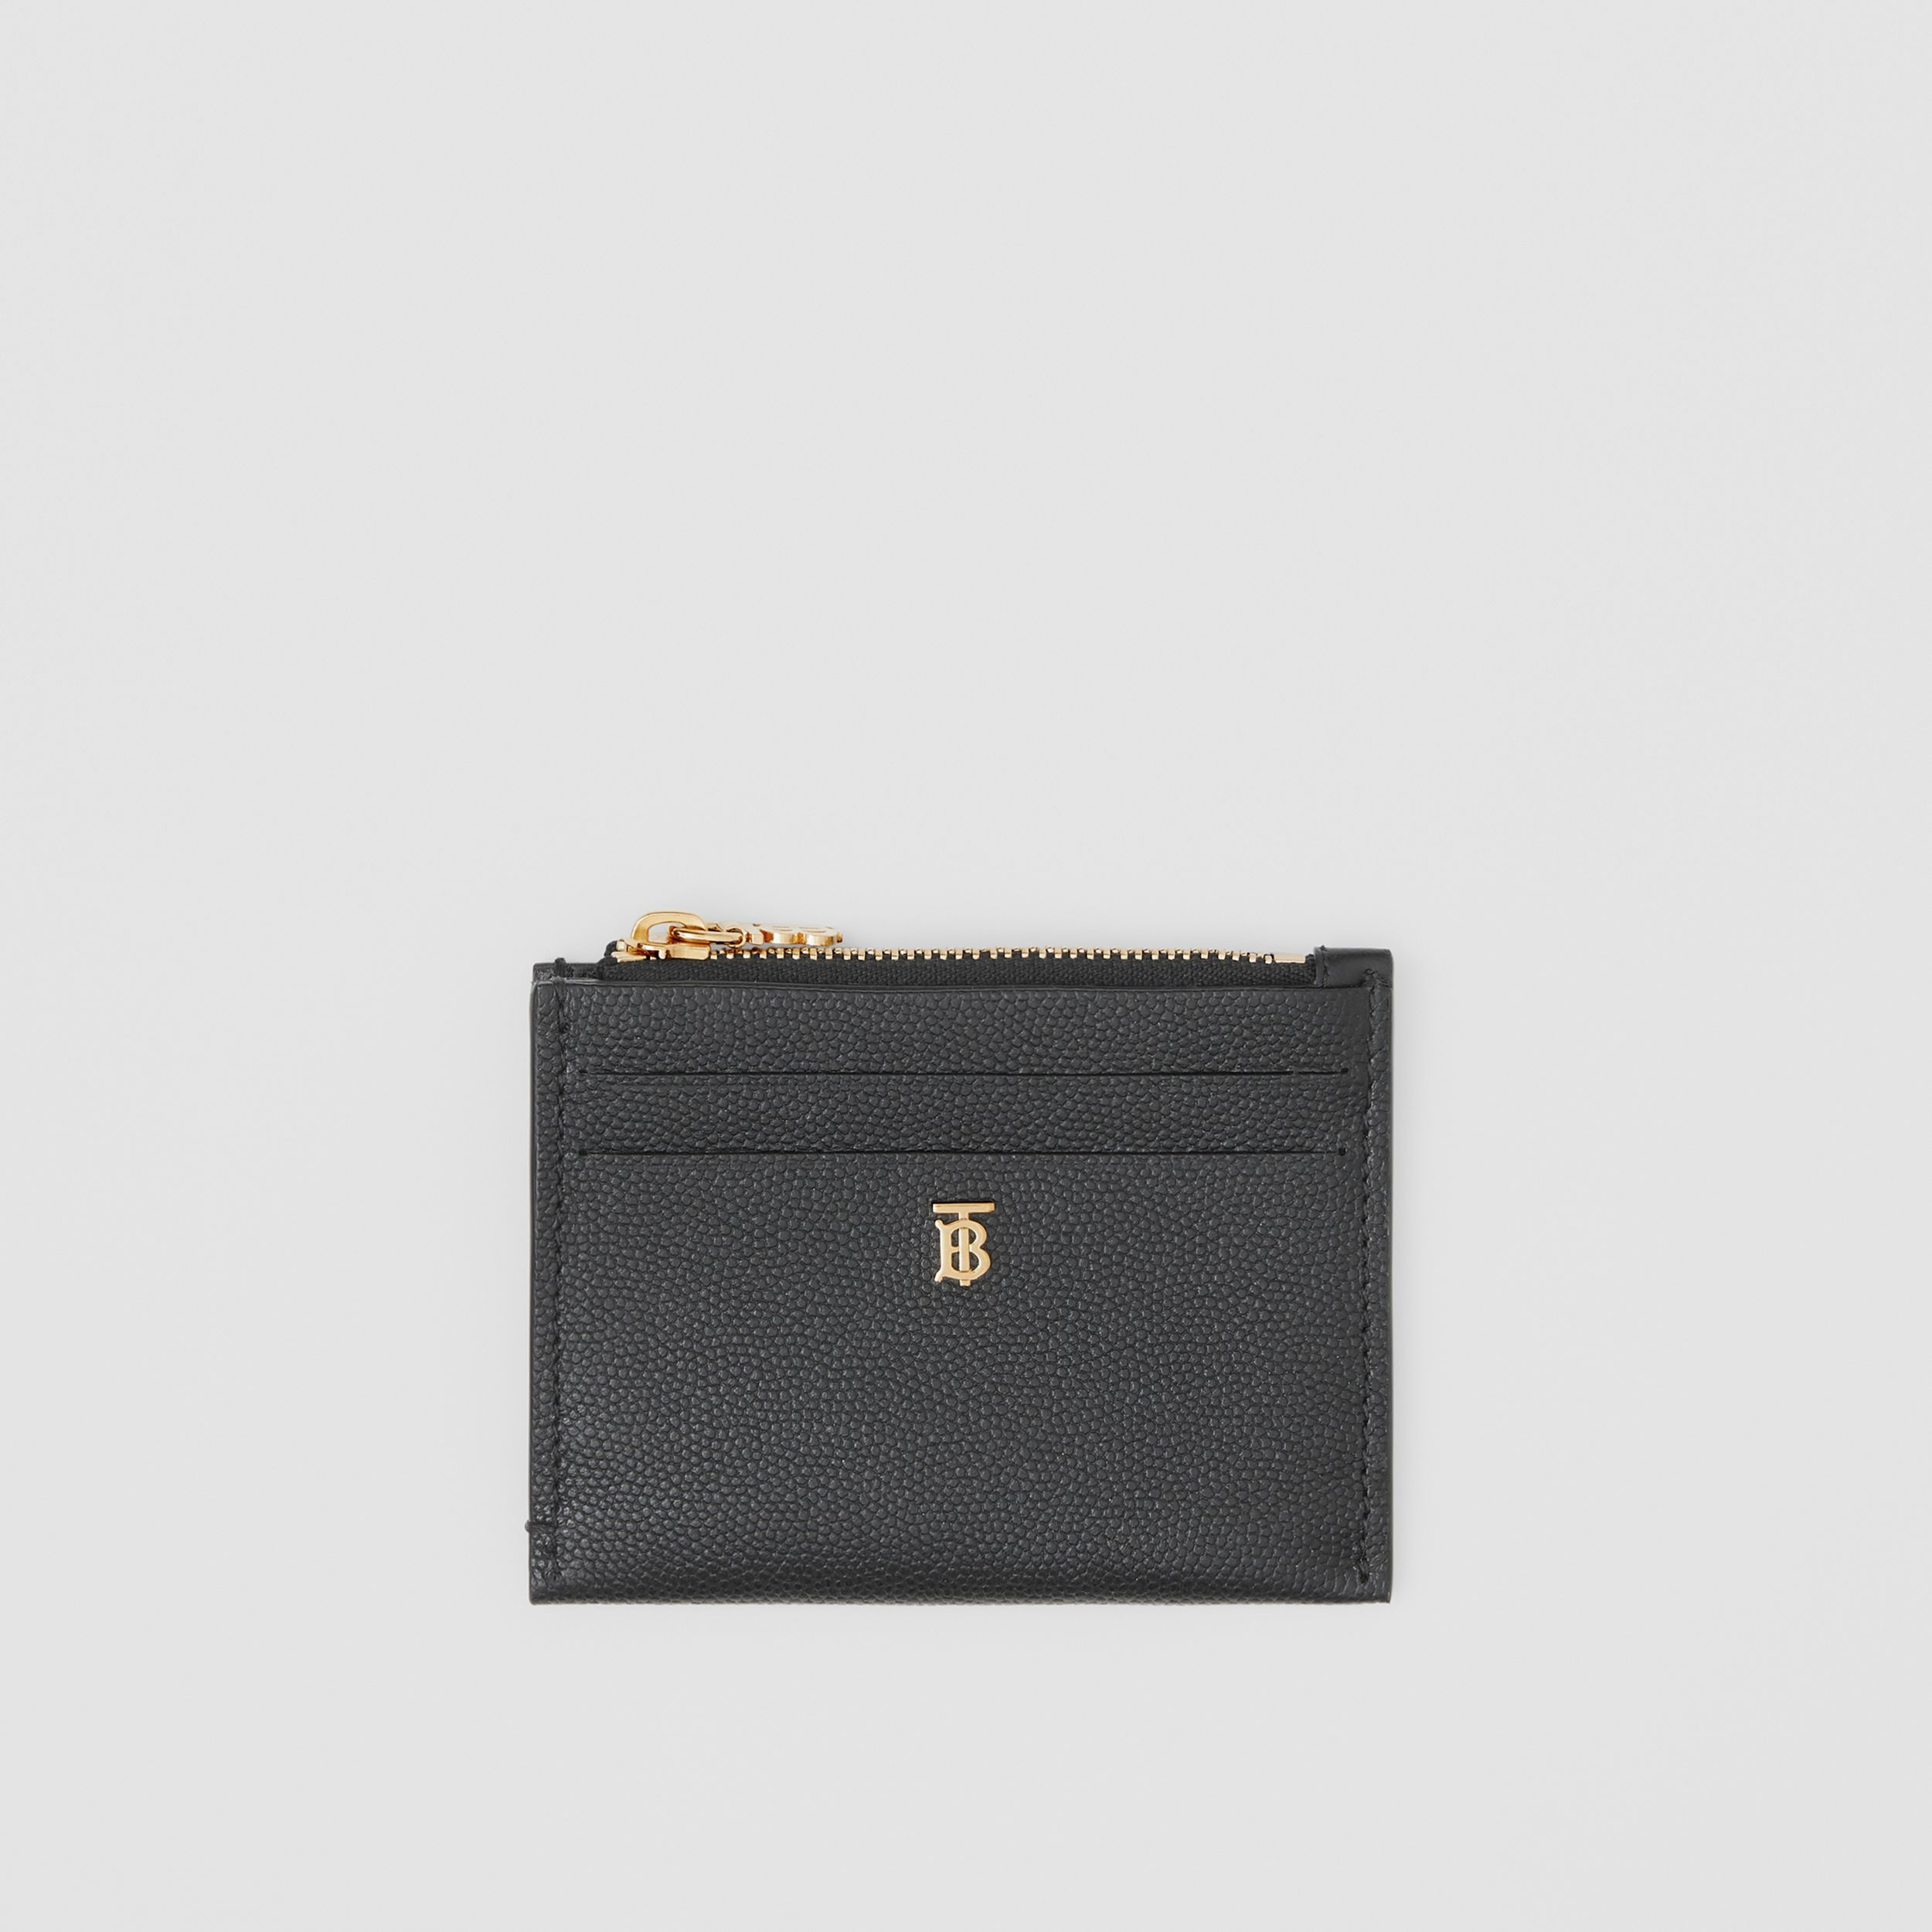 Monogram Motif Grainy Leather Zip Card Case in Black - Women | Burberry - 1